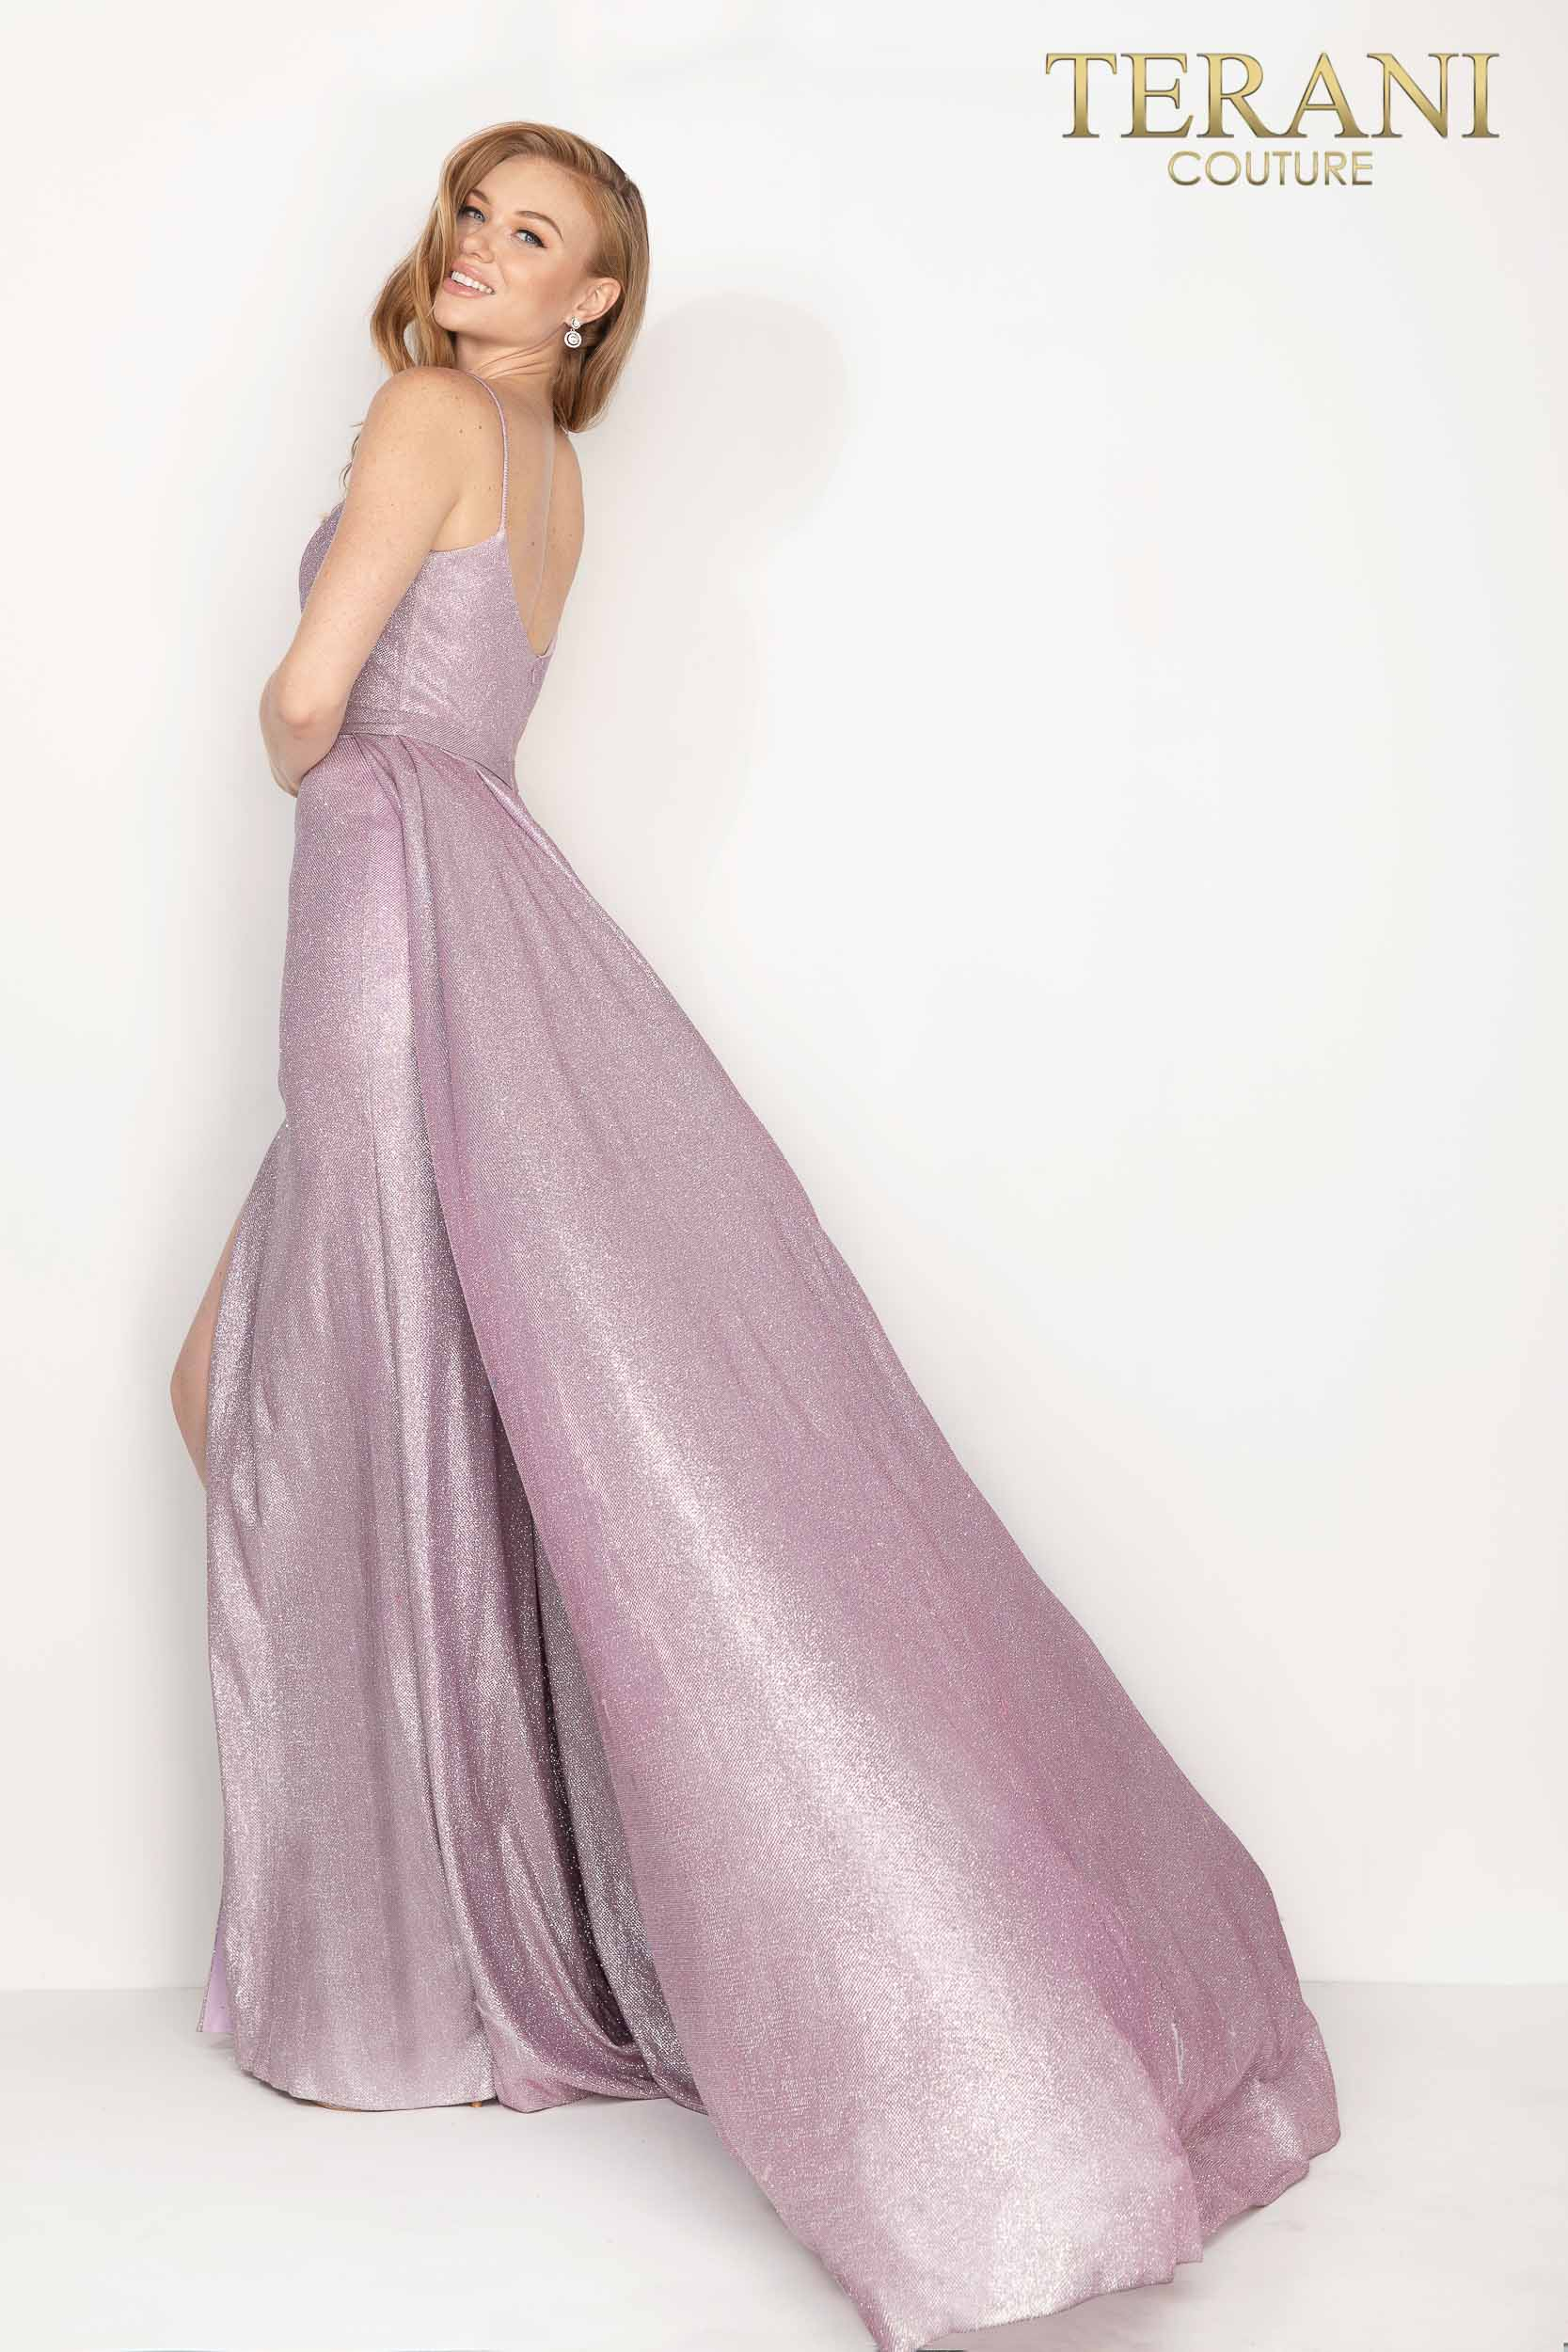 Terani Couture mink metallic high slit prom dress with overskirt – Style number 2011P1164